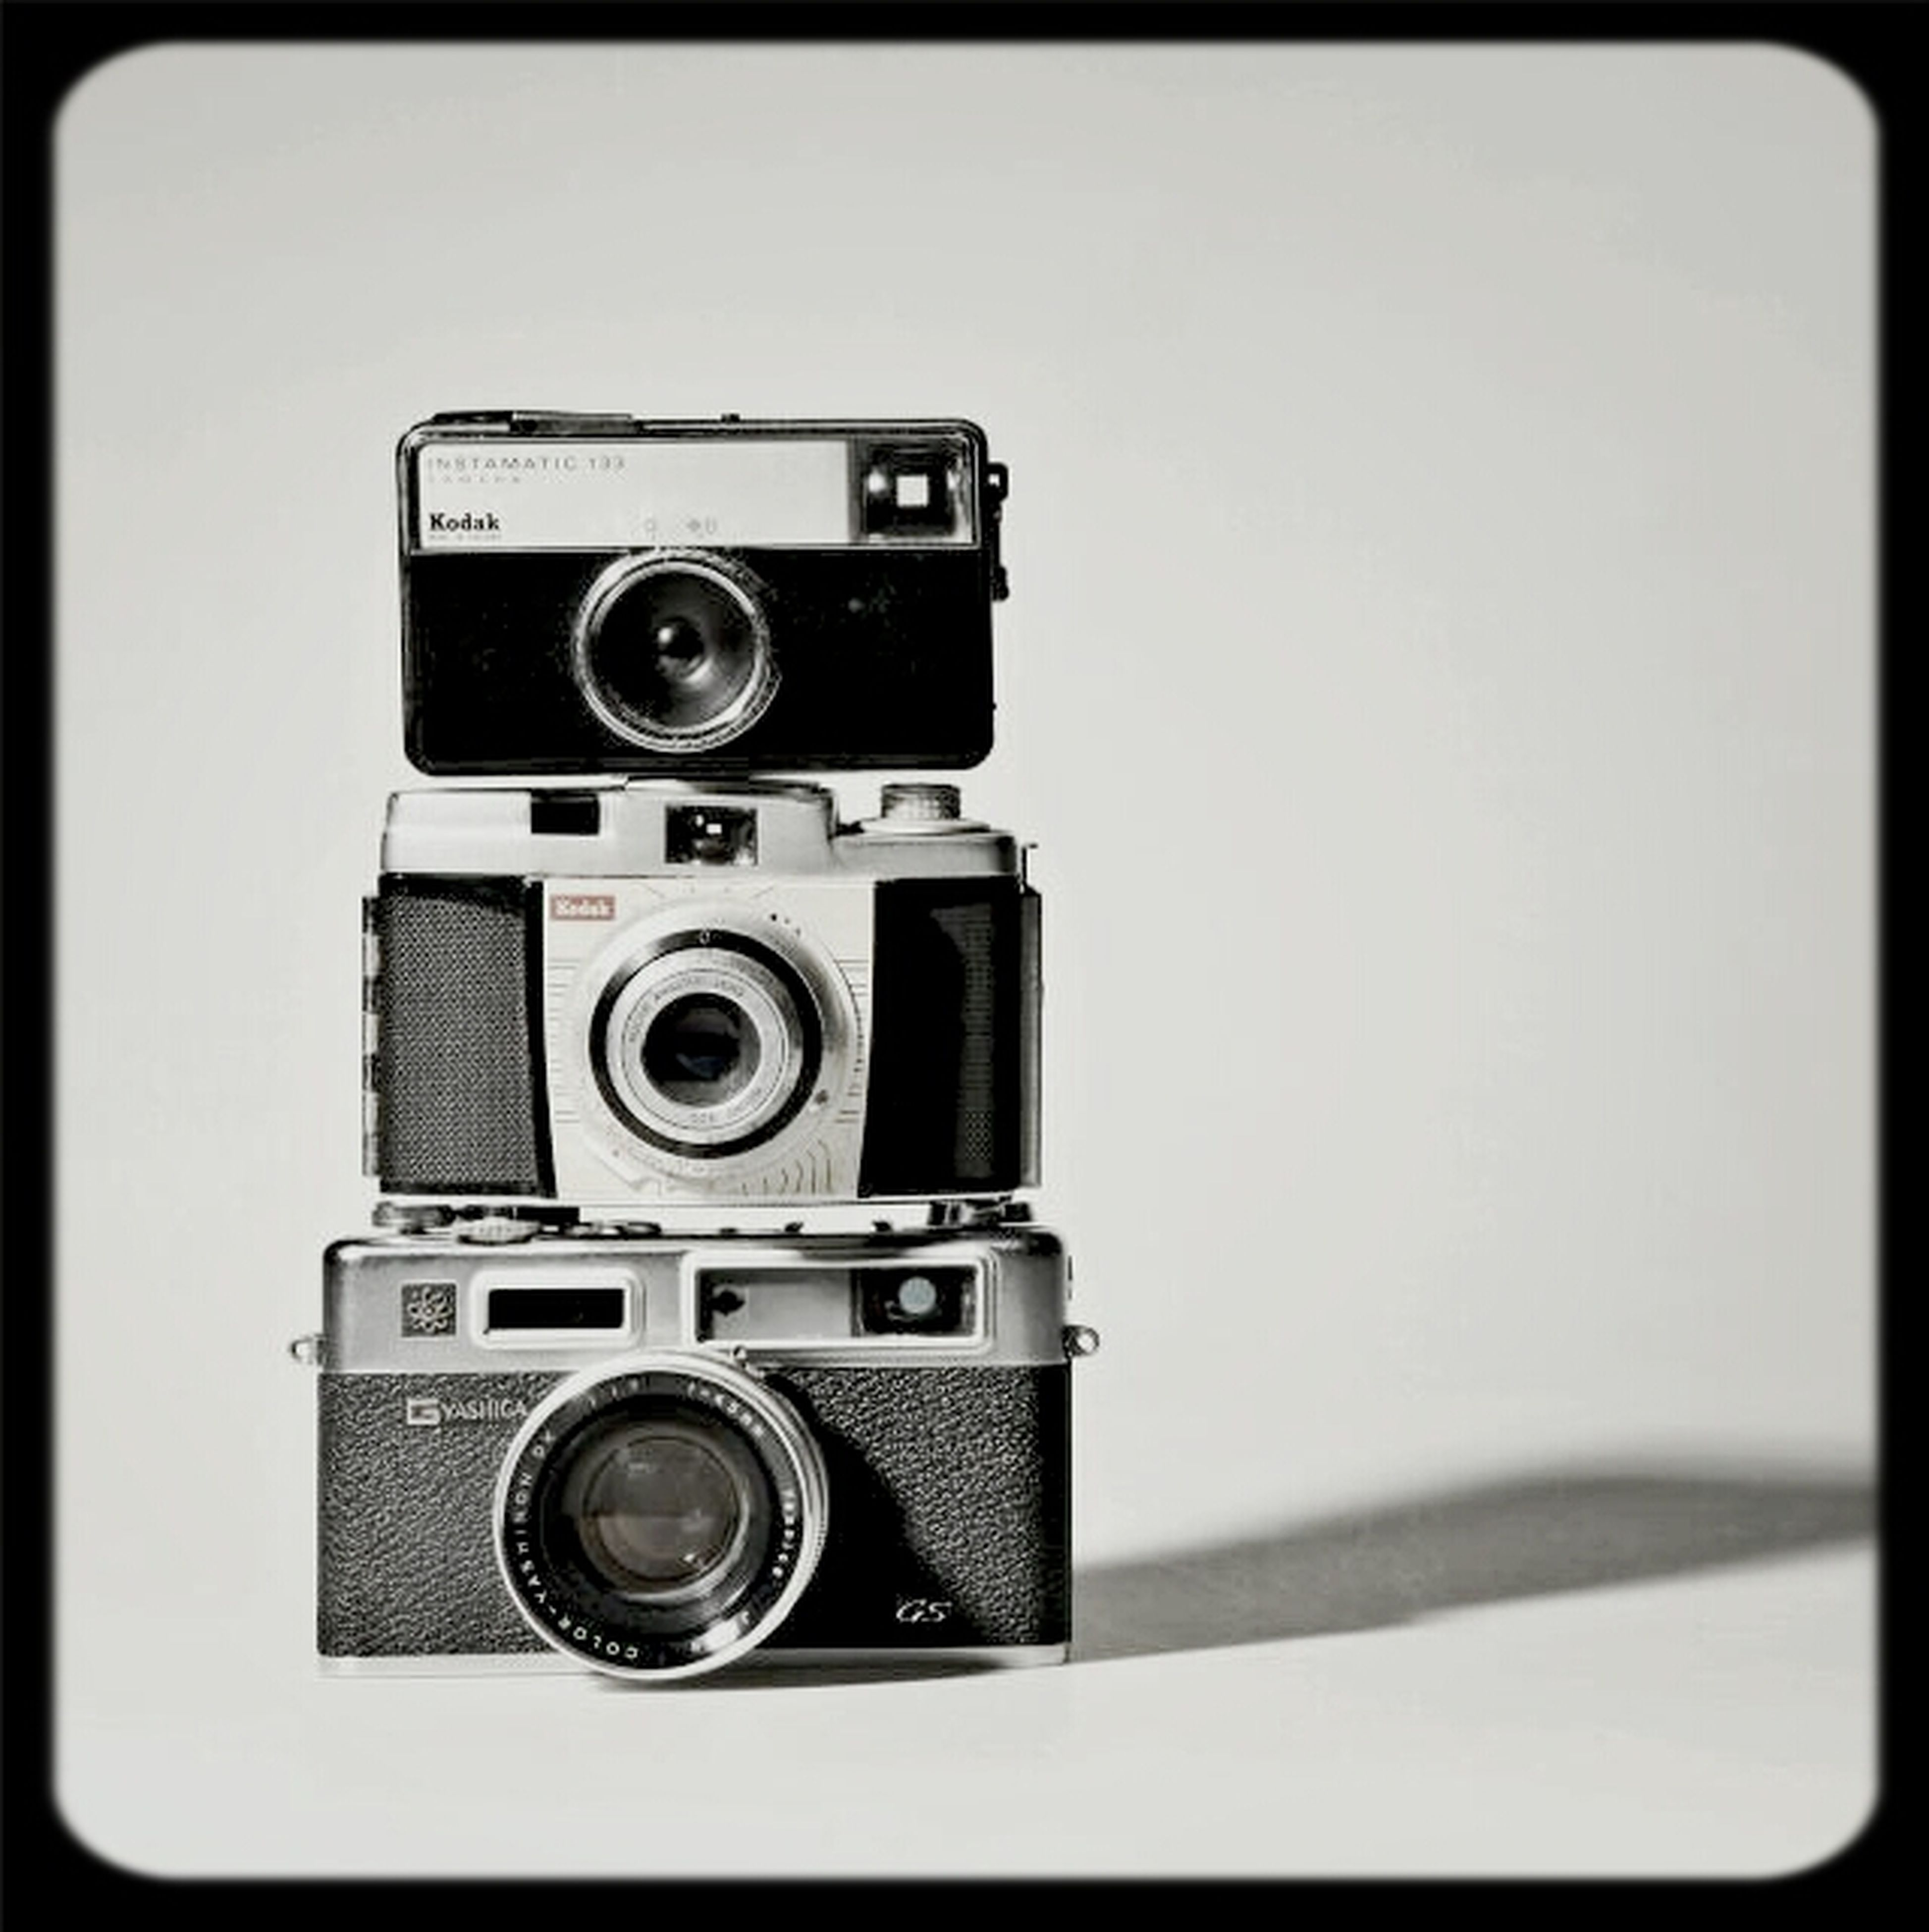 technology, retro styled, close-up, transfer print, old-fashioned, photography themes, single object, white background, auto post production filter, time, clock, lens - optical instrument, camera - photographic equipment, studio shot, indoors, number, communication, antique, vintage, copy space